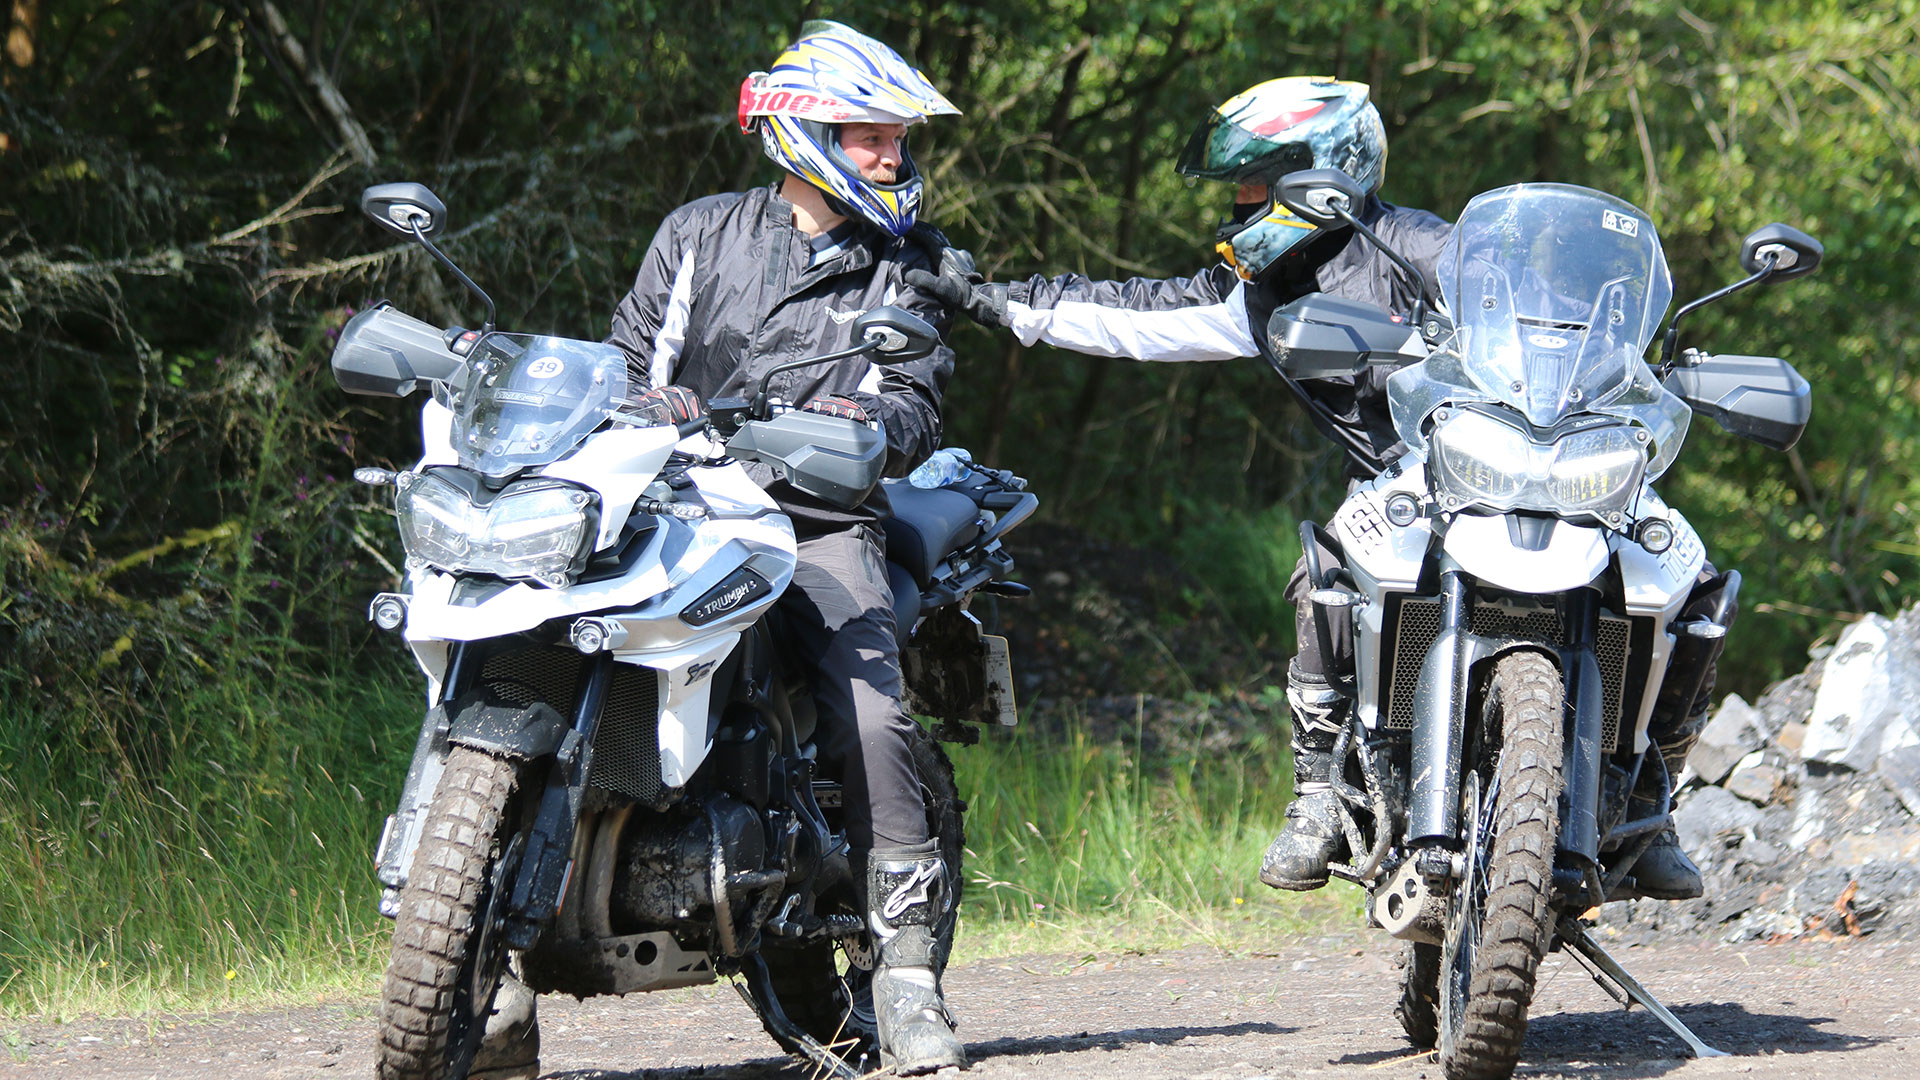 Satisfied riders on The Triumph Tiger 800 and 1200